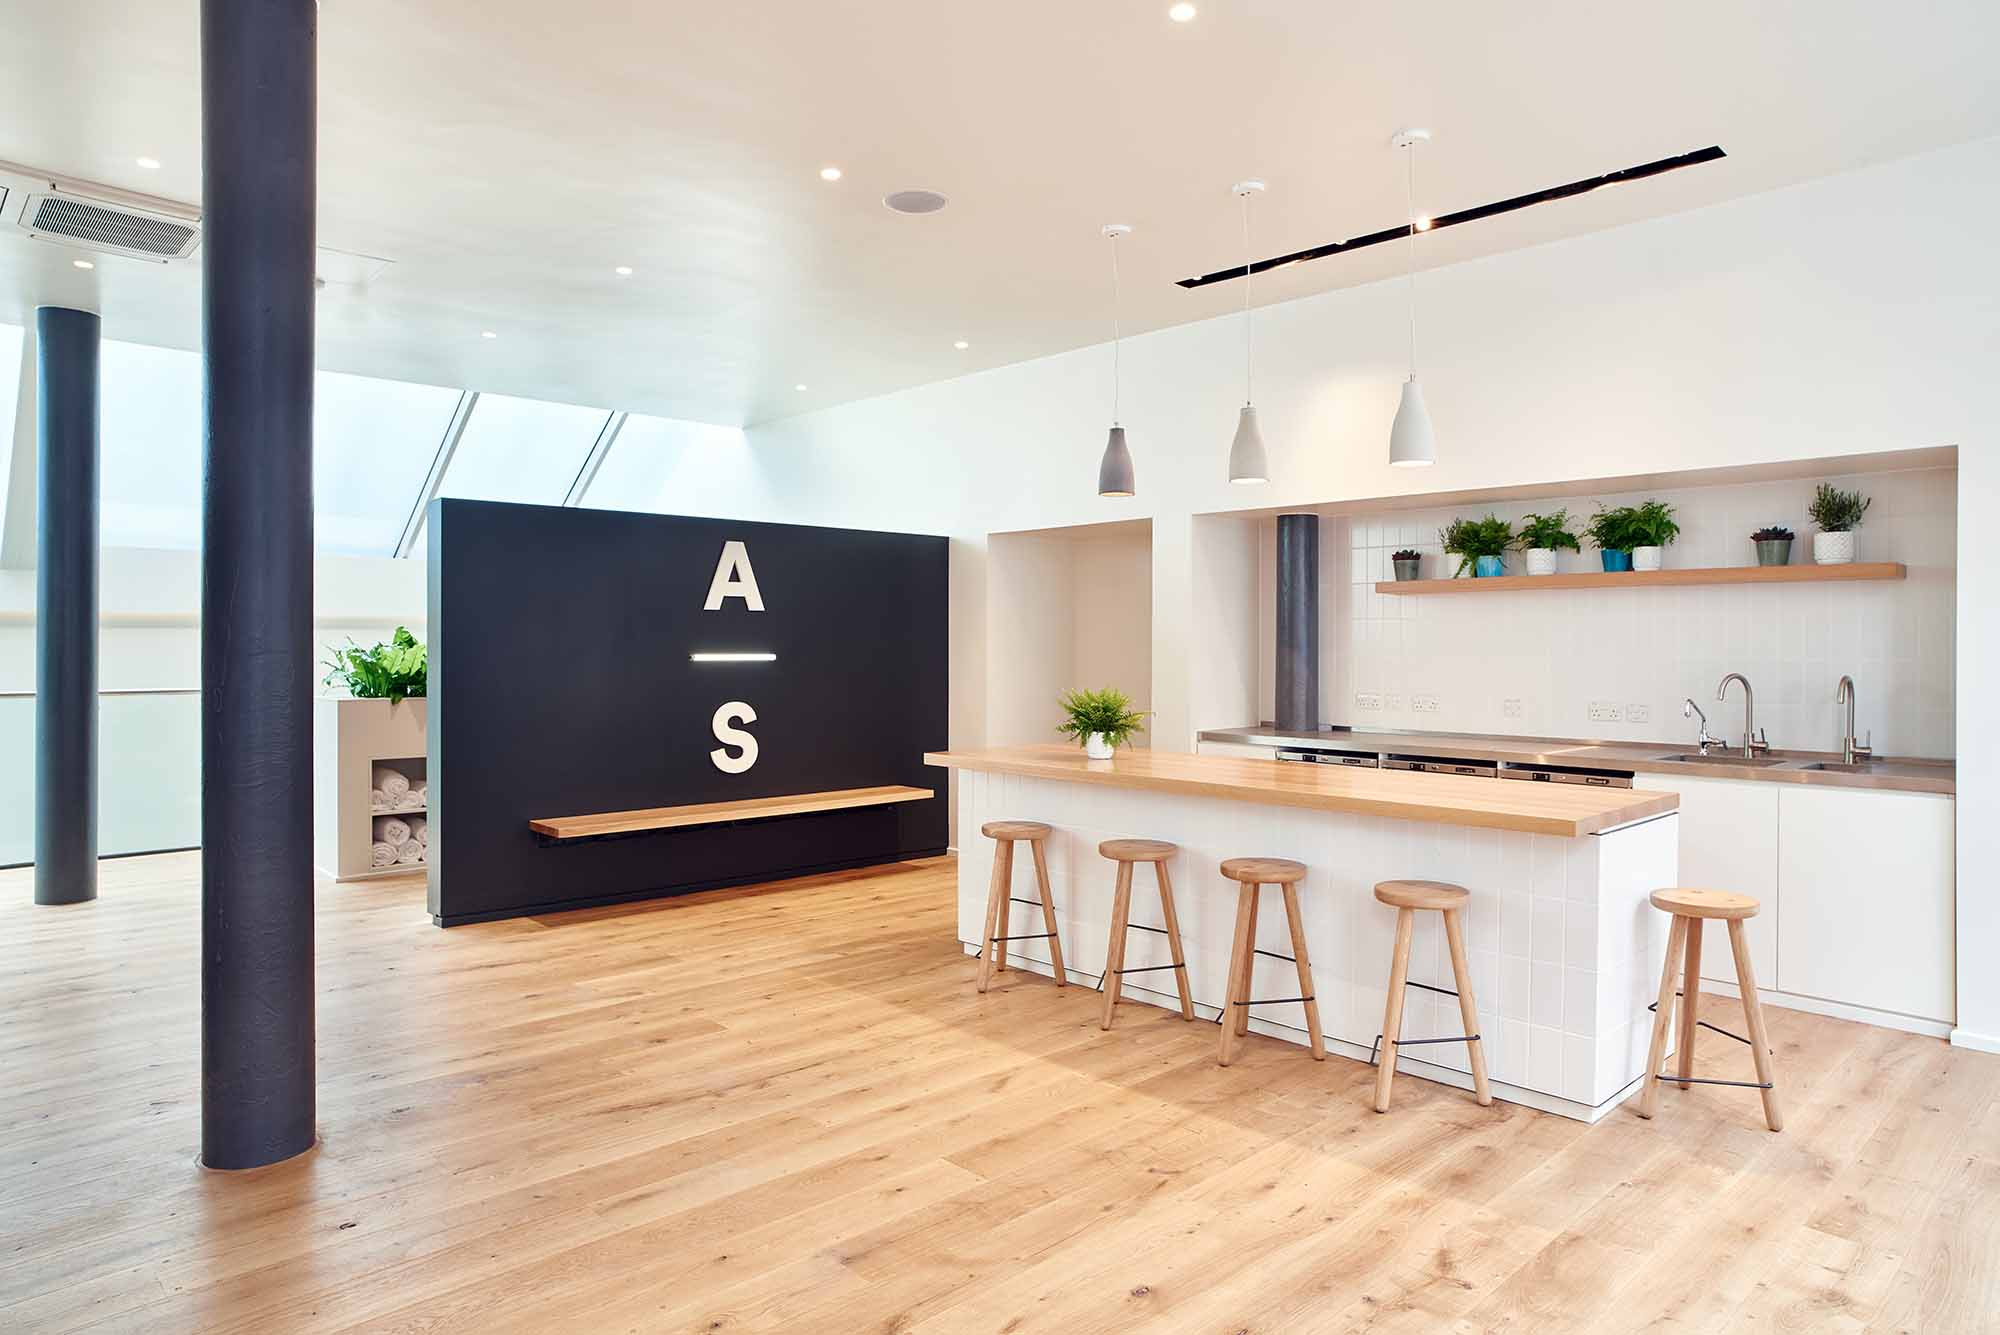 H-House-Another-Space-London-Another_Space_JMS-027.JPG